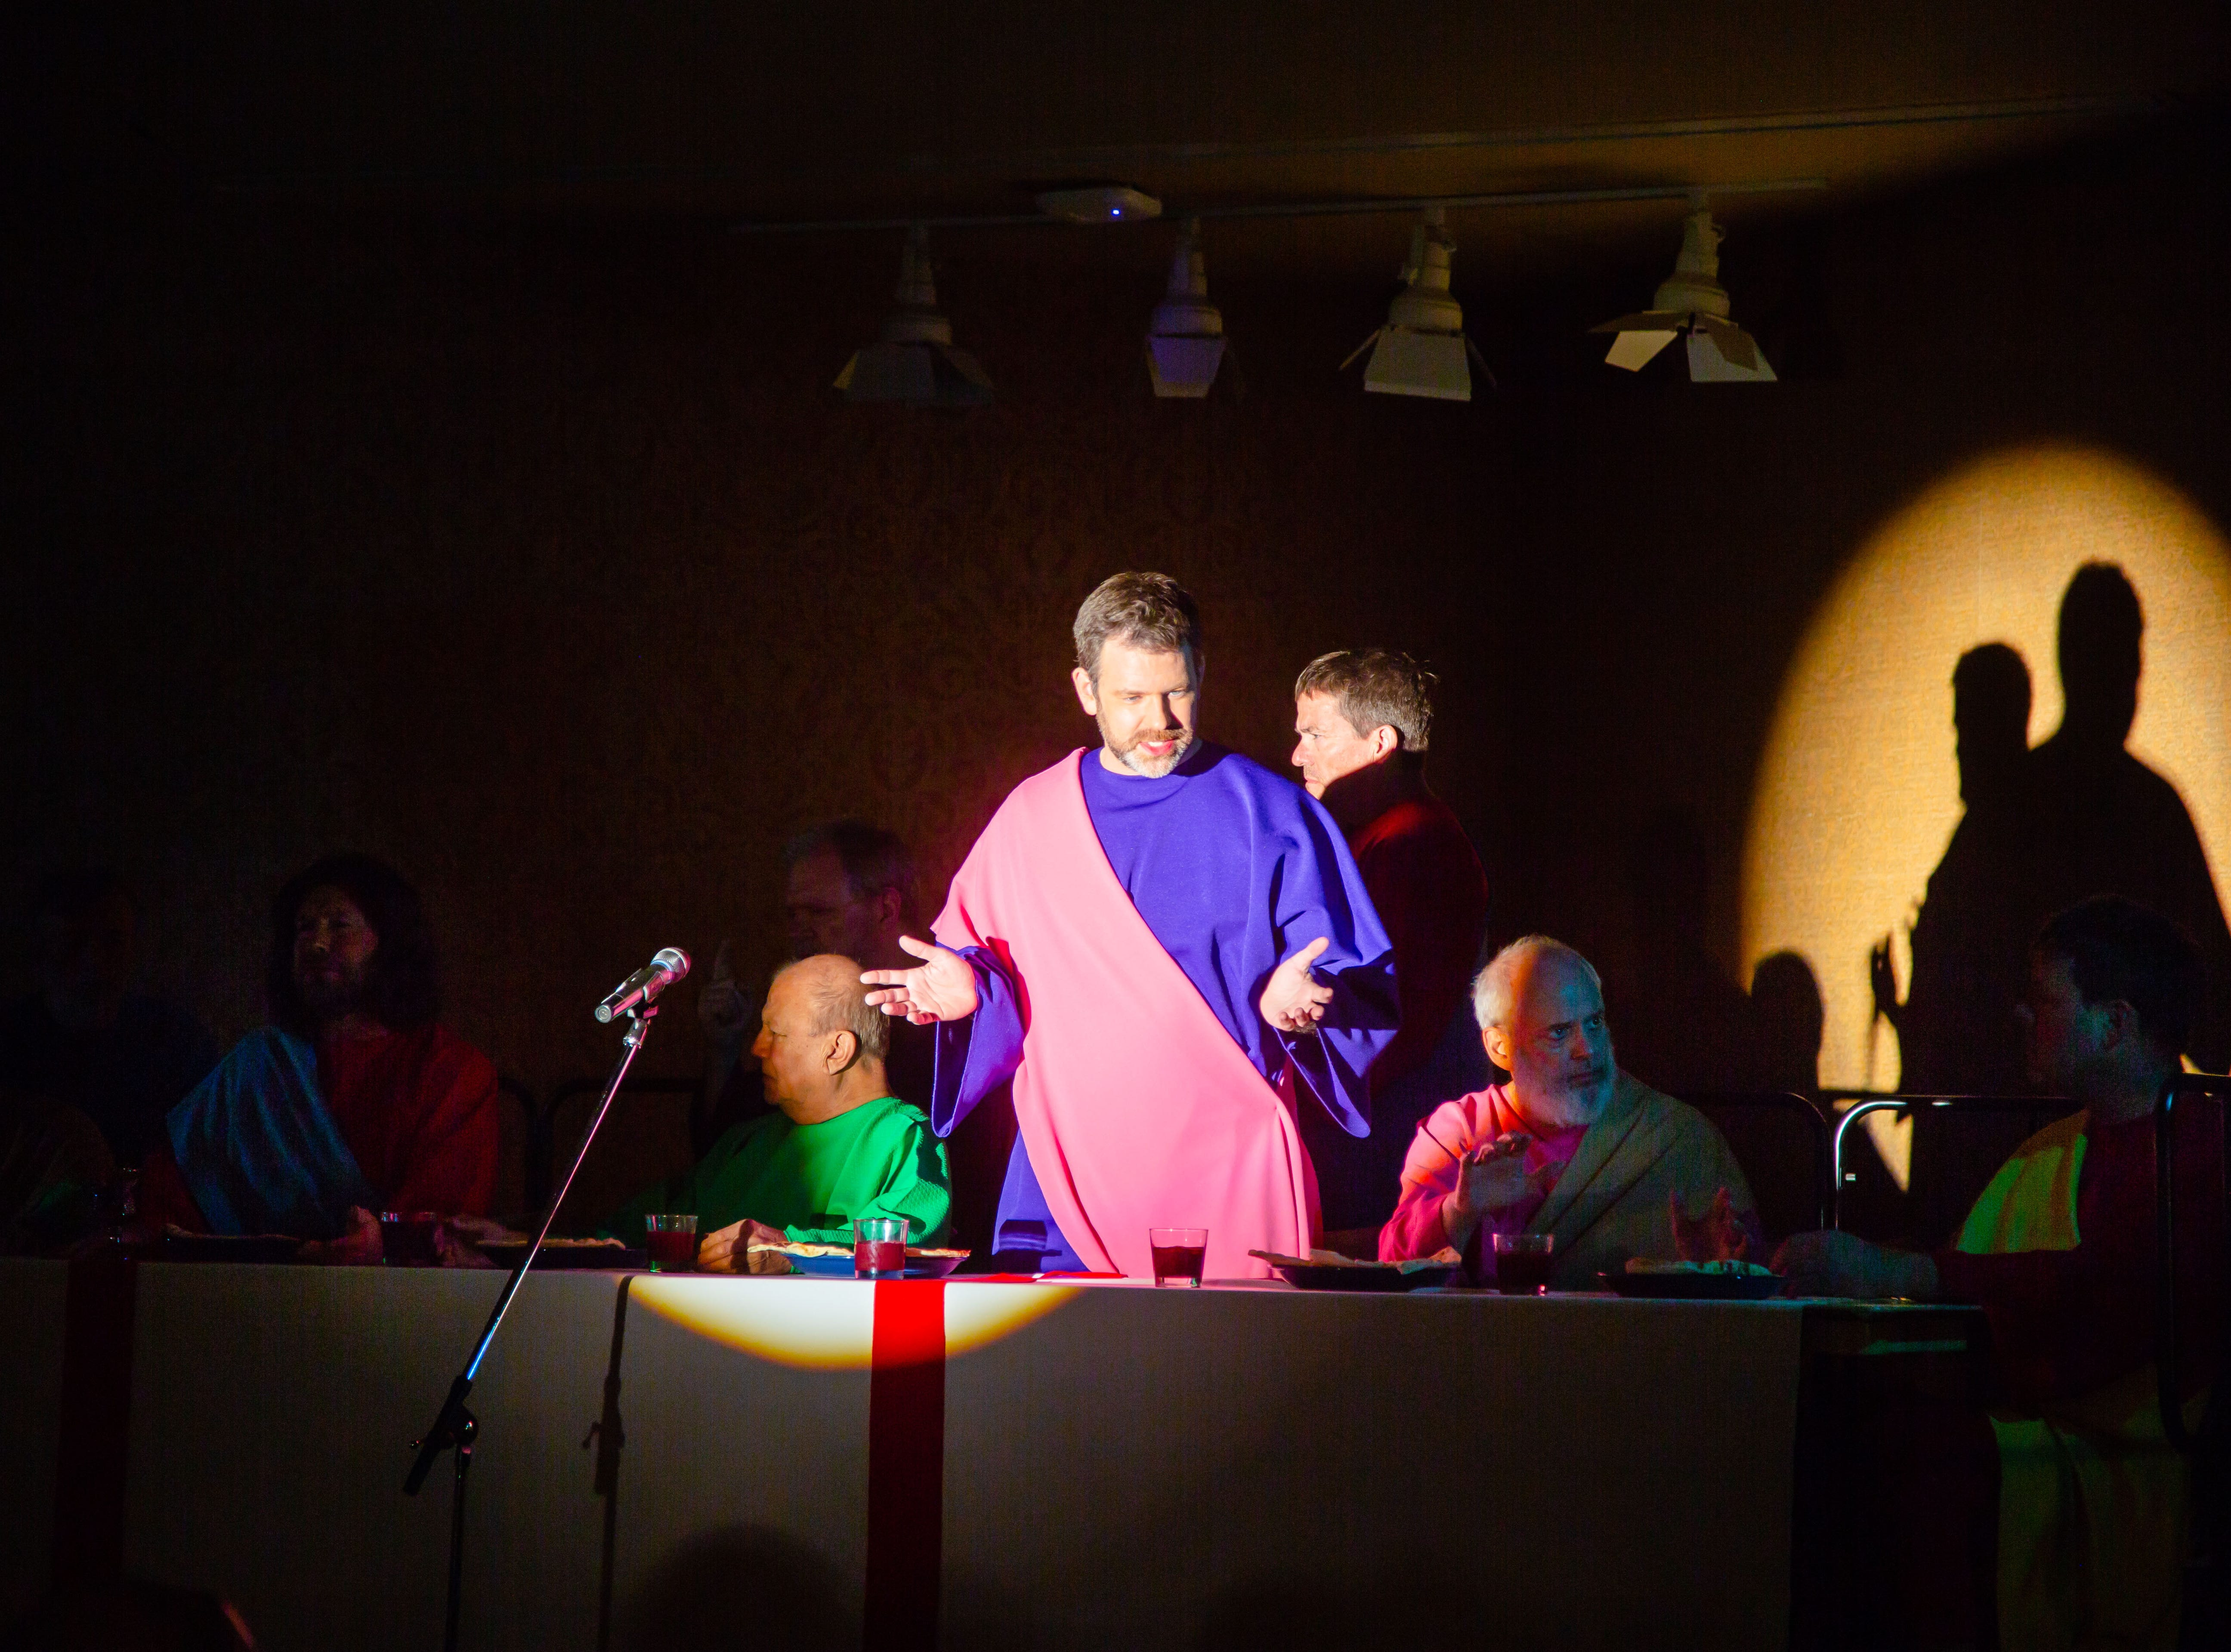 West Des Moines United Methodist Church performs the living dramatization of Leonardo Da Vinci's The Last Supper at Edgewater in West Des Moines Wednesday, April 10, 2019.